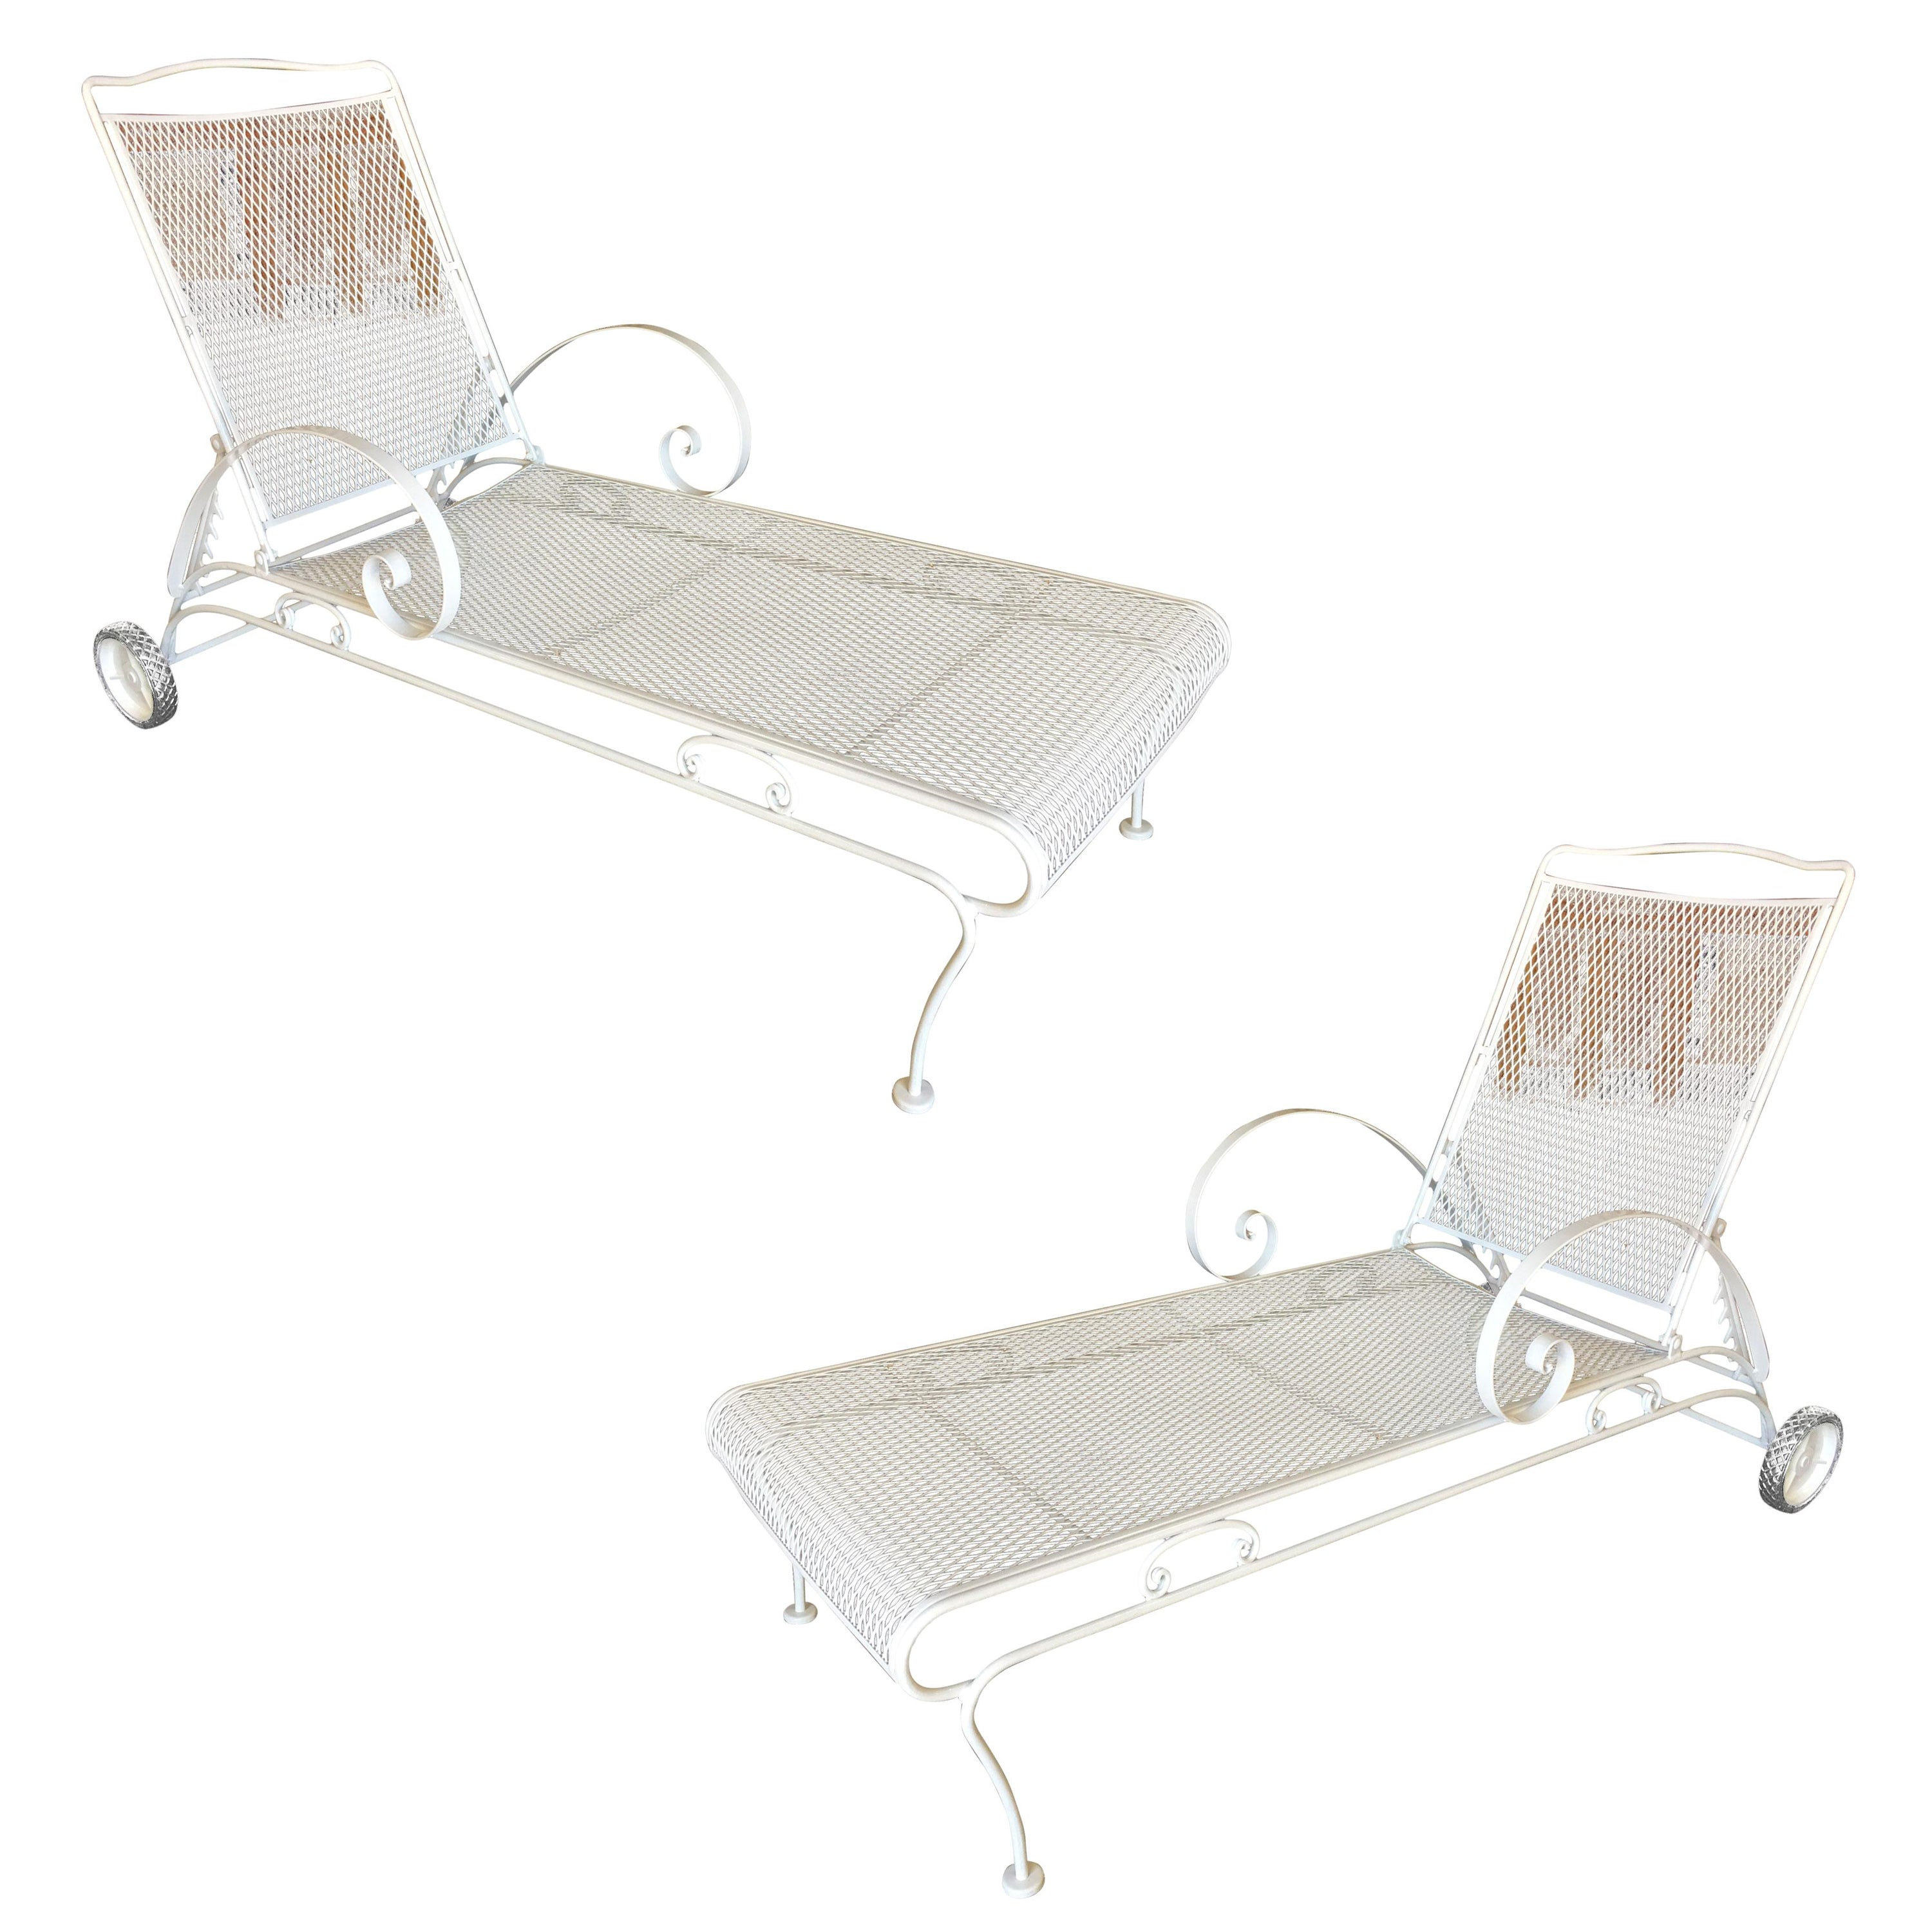 Outstanding Iron Mesh Outdoor Patio Chaise Lounge By Woodard 2 Available Bralicious Painted Fabric Chair Ideas Braliciousco